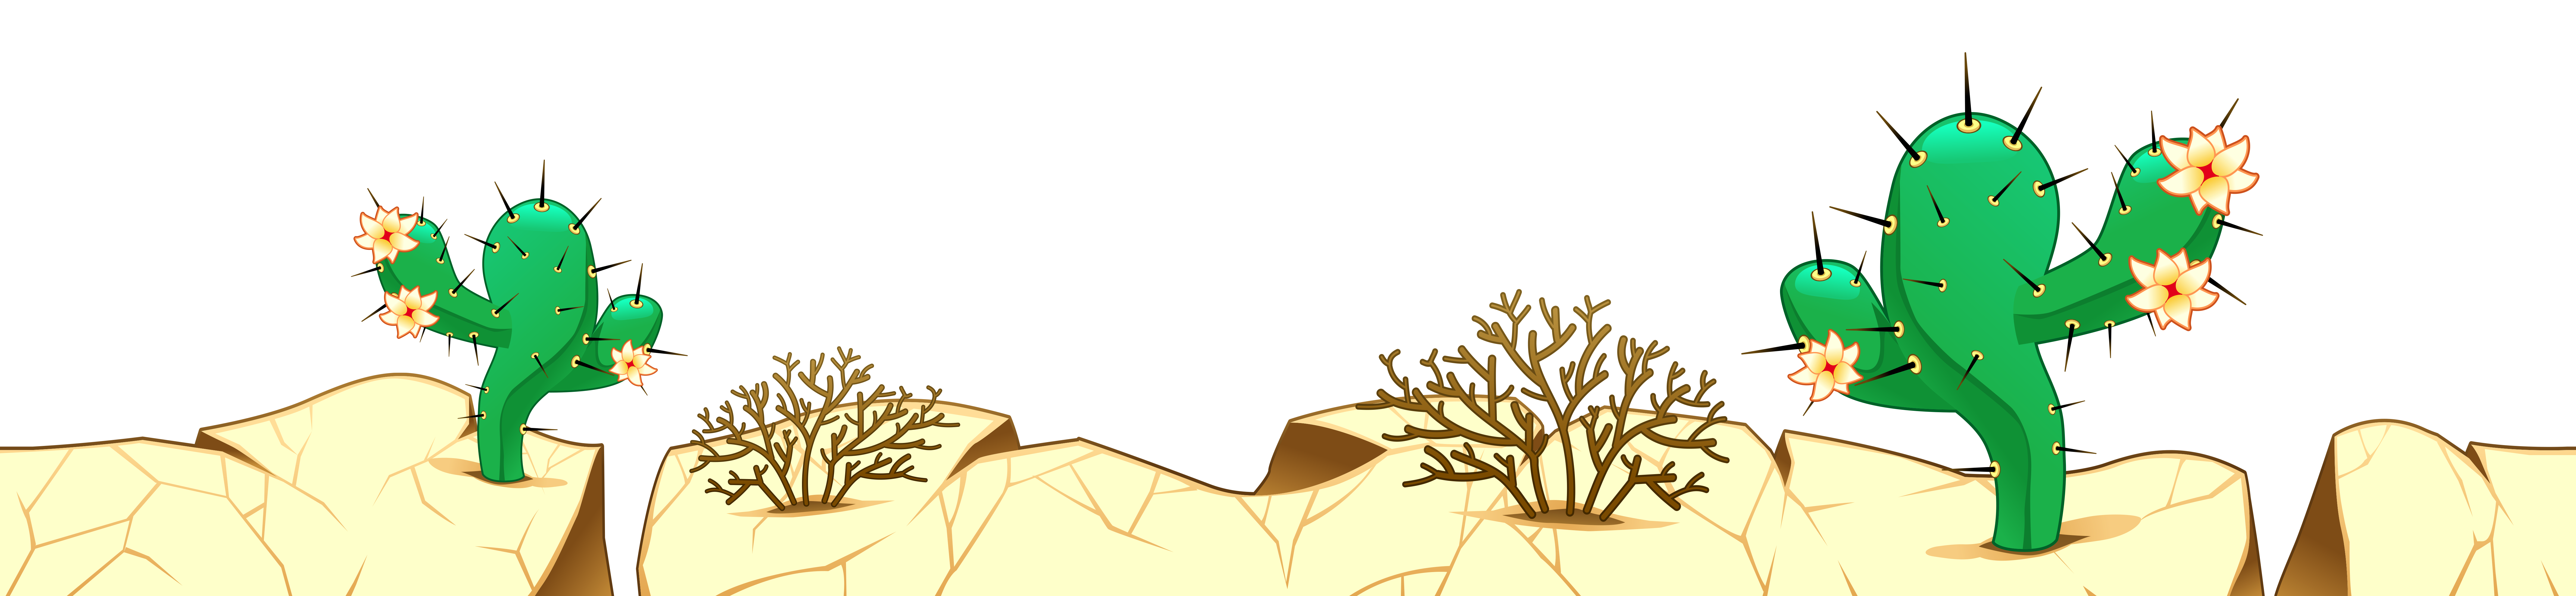 Desert png clipart. Ground with cactuses picture